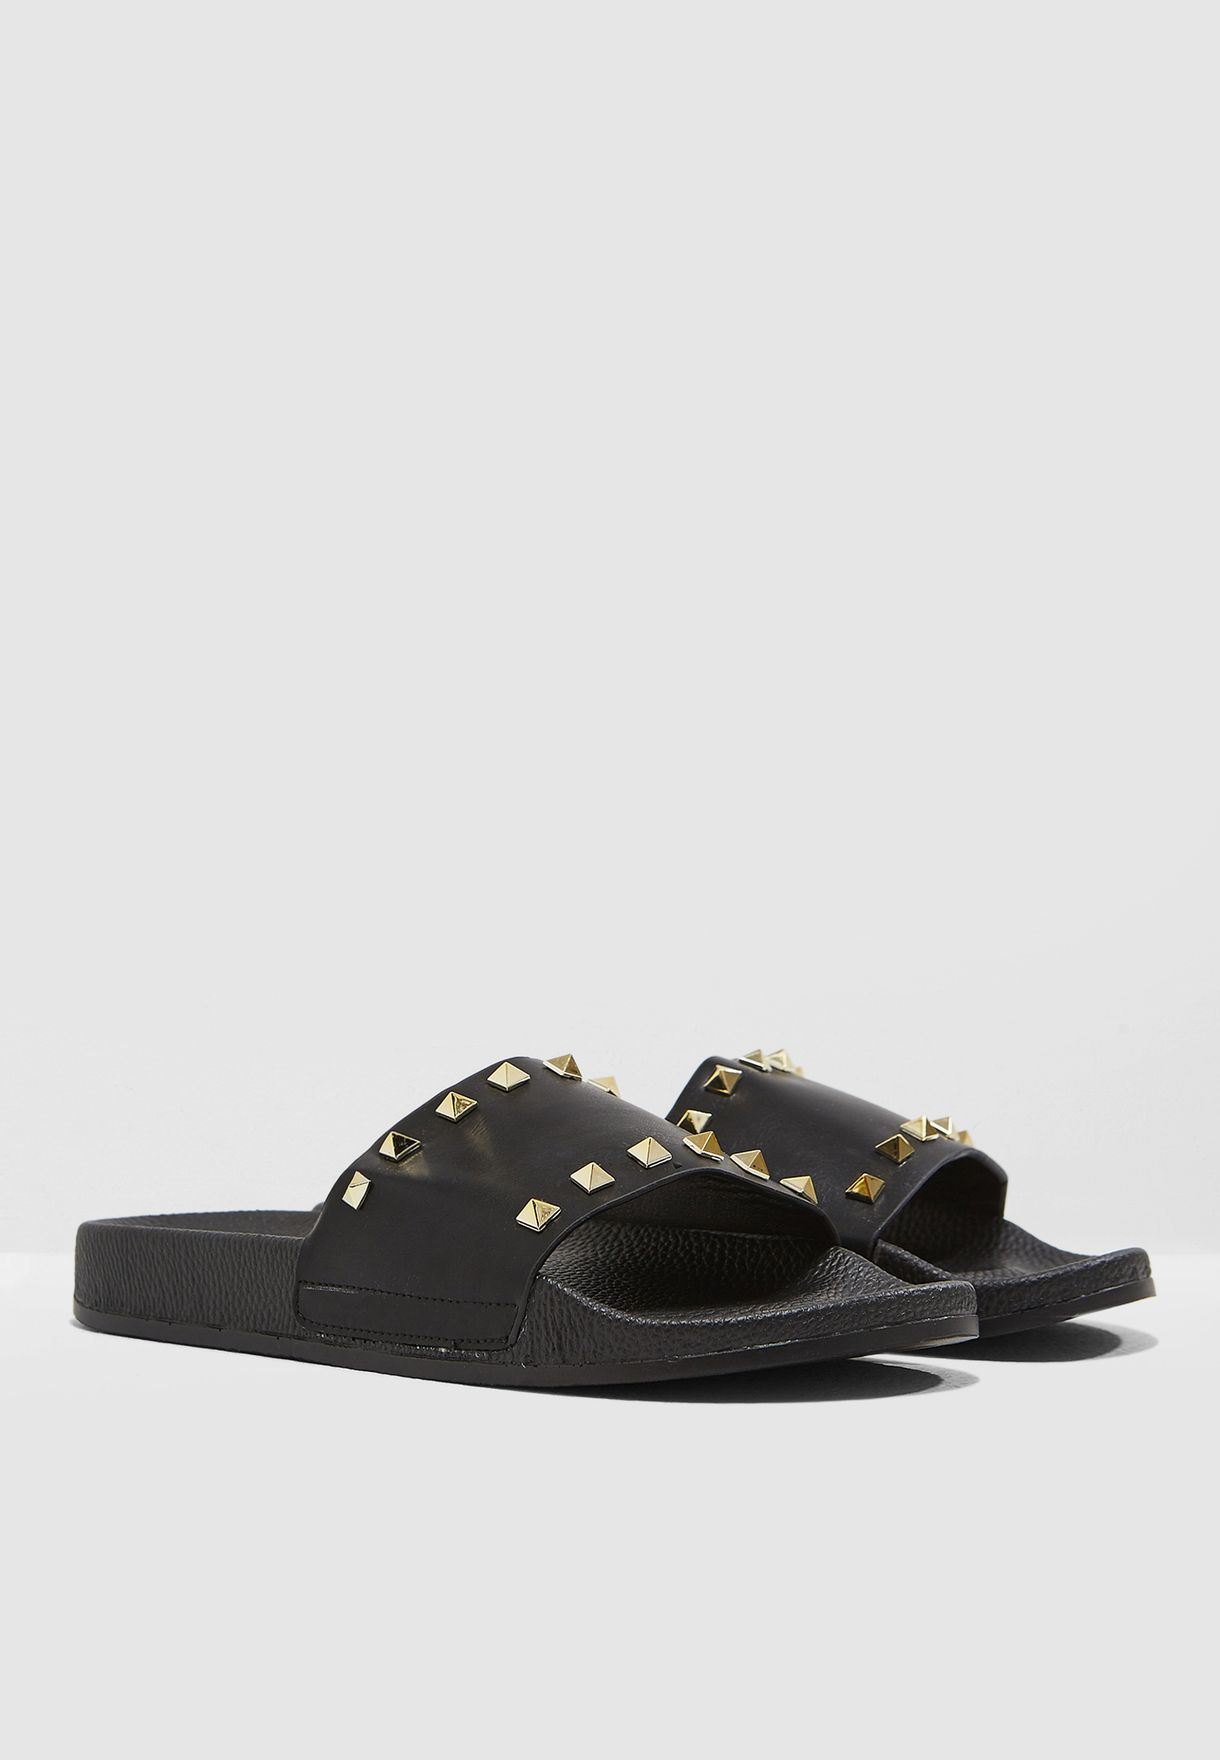 36bcf293b Shop Coco black Amber Studded Slides 651-1 for Women in UAE ...